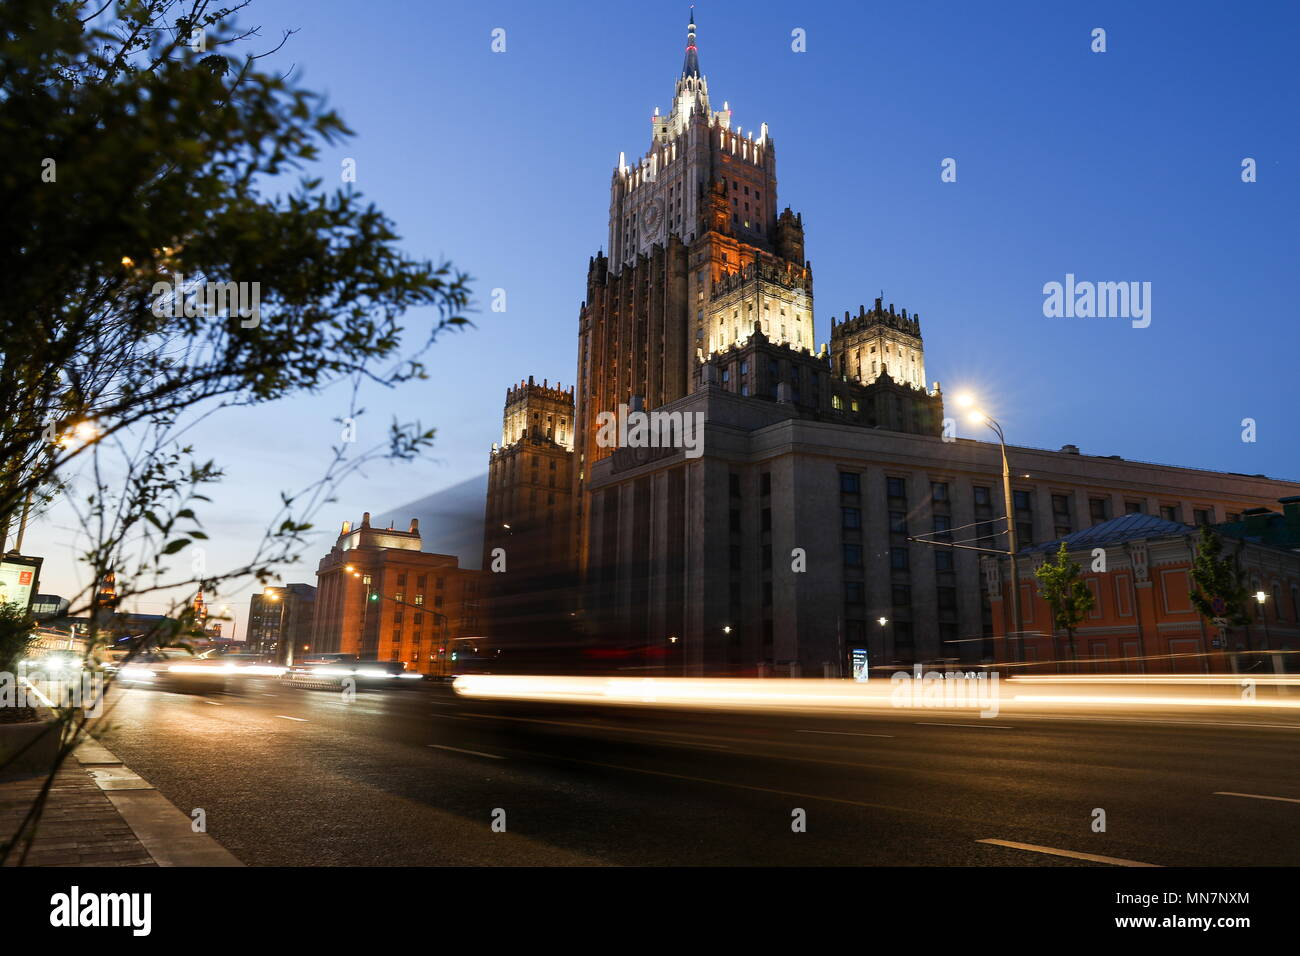 Moscow, Russia. 14th May, 2018. MOSCOW, RUSSIA - MAY 14, 2018: A view of the Russian Foreign Ministry headquarters in central Moscow, the building being one of the so-called Seven Sisters known to belong to Stalinist architecture. Sergei Savostyanov/TASS Credit: ITAR-TASS News Agency/Alamy Live News Stock Photo